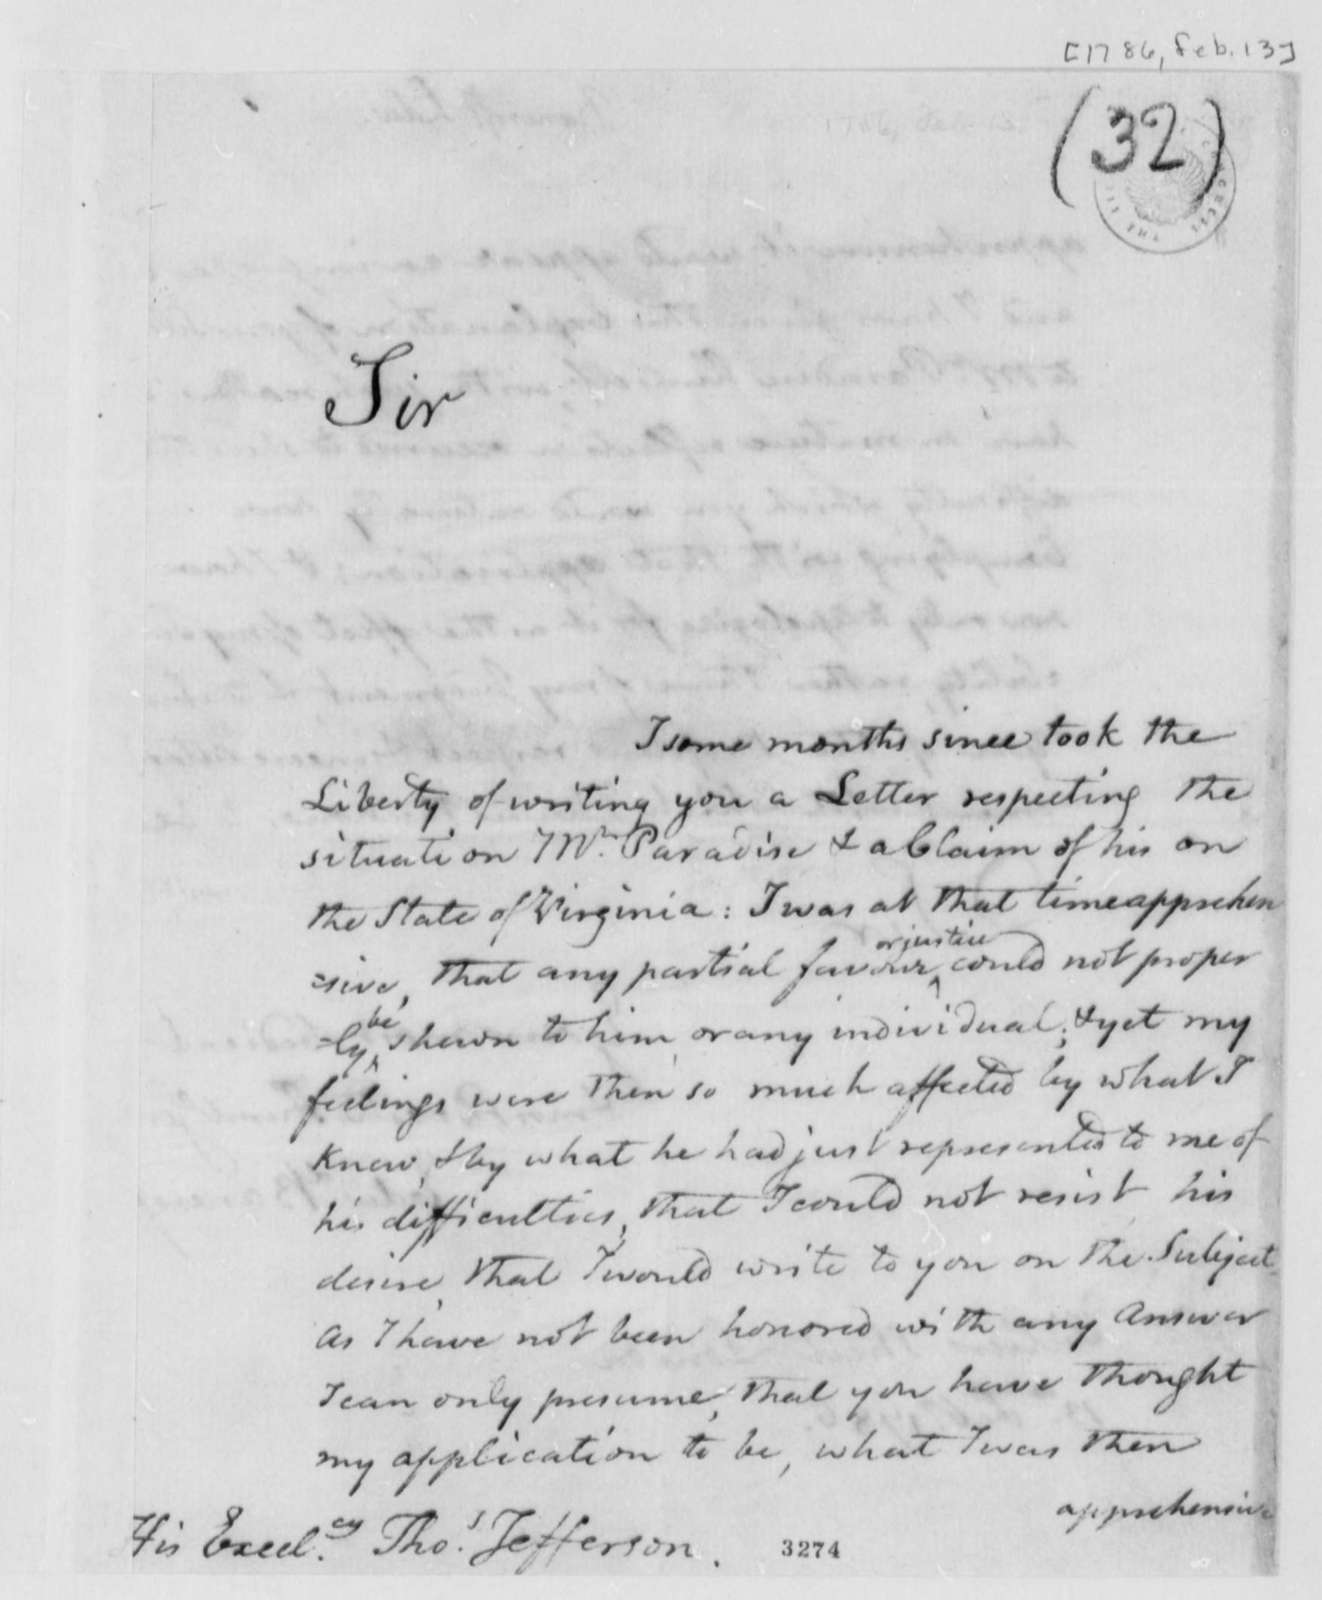 Edward Bancroft to Thomas Jefferson, February 13, 1786